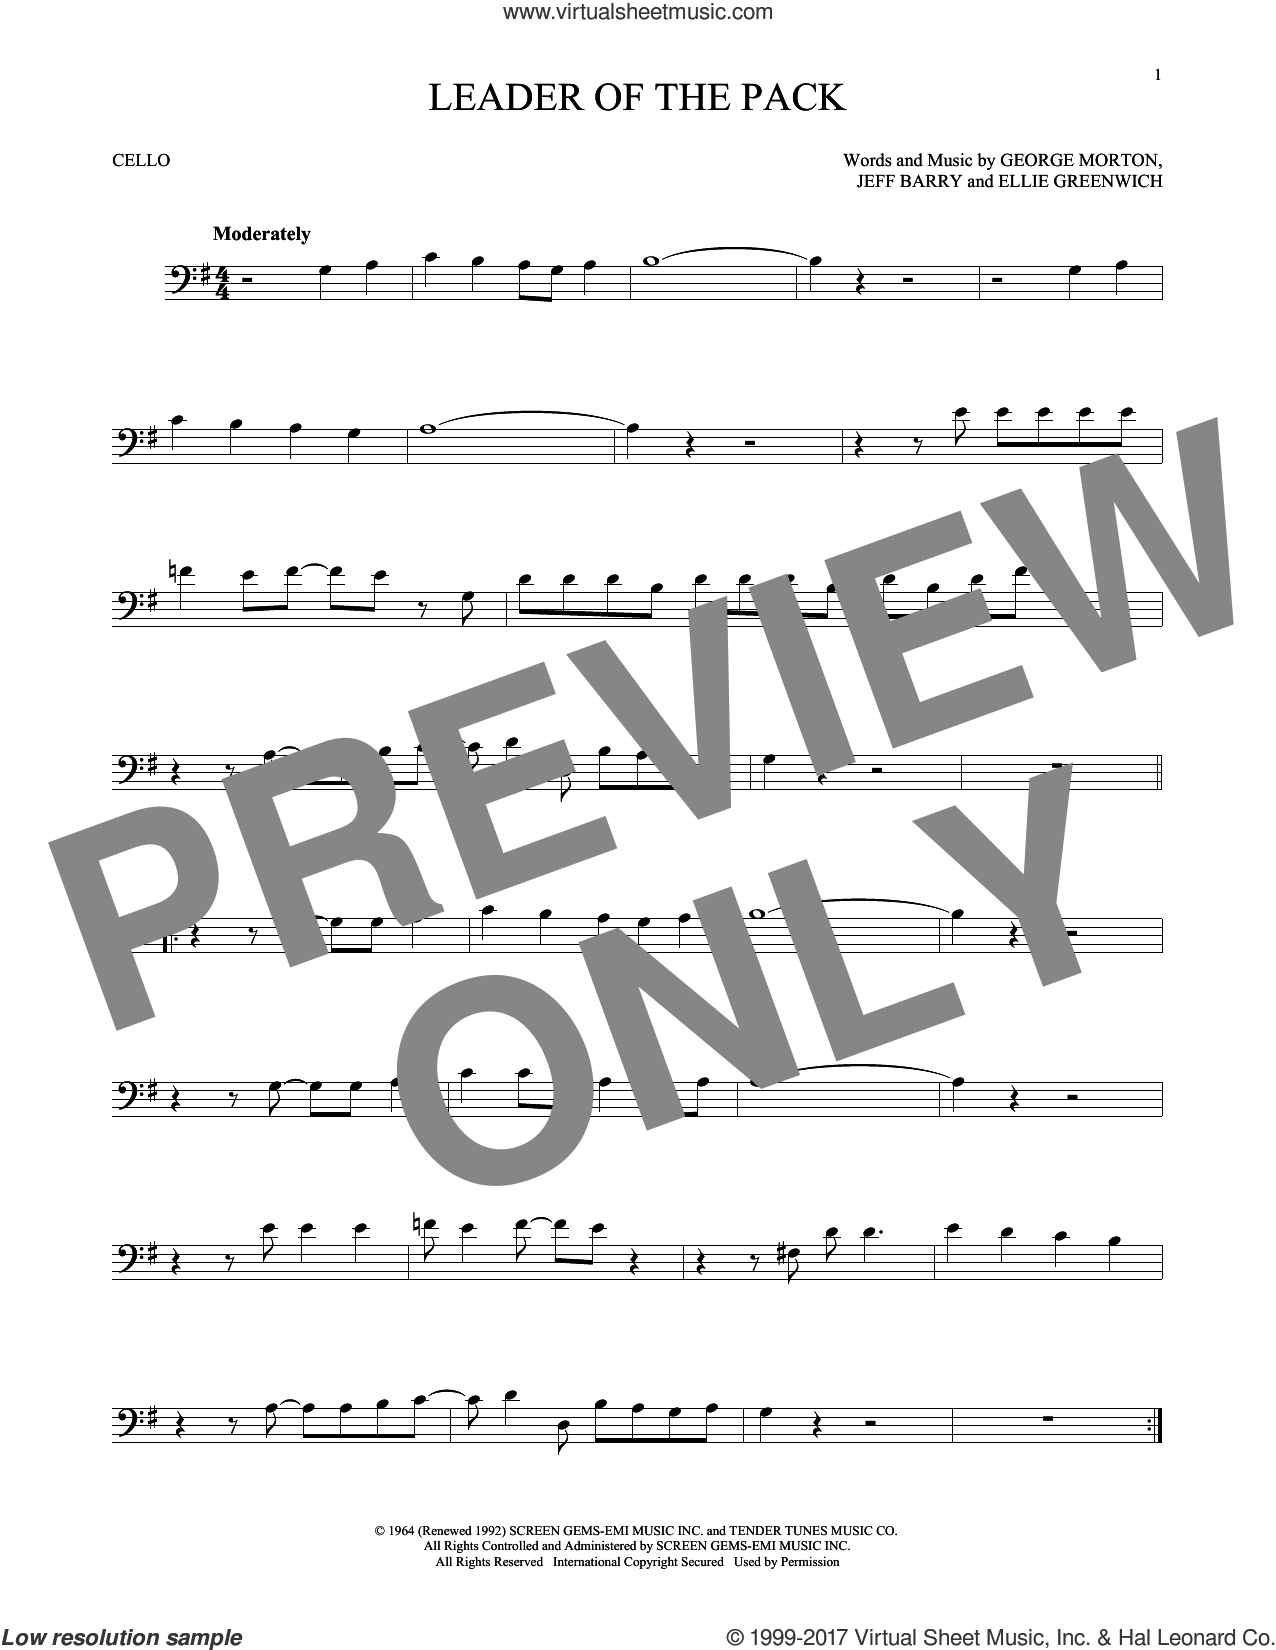 Leader Of The Pack sheet music for cello solo by The Shangri-Las, Ellie Greenwich, George Morton and Jeff Barry, intermediate skill level